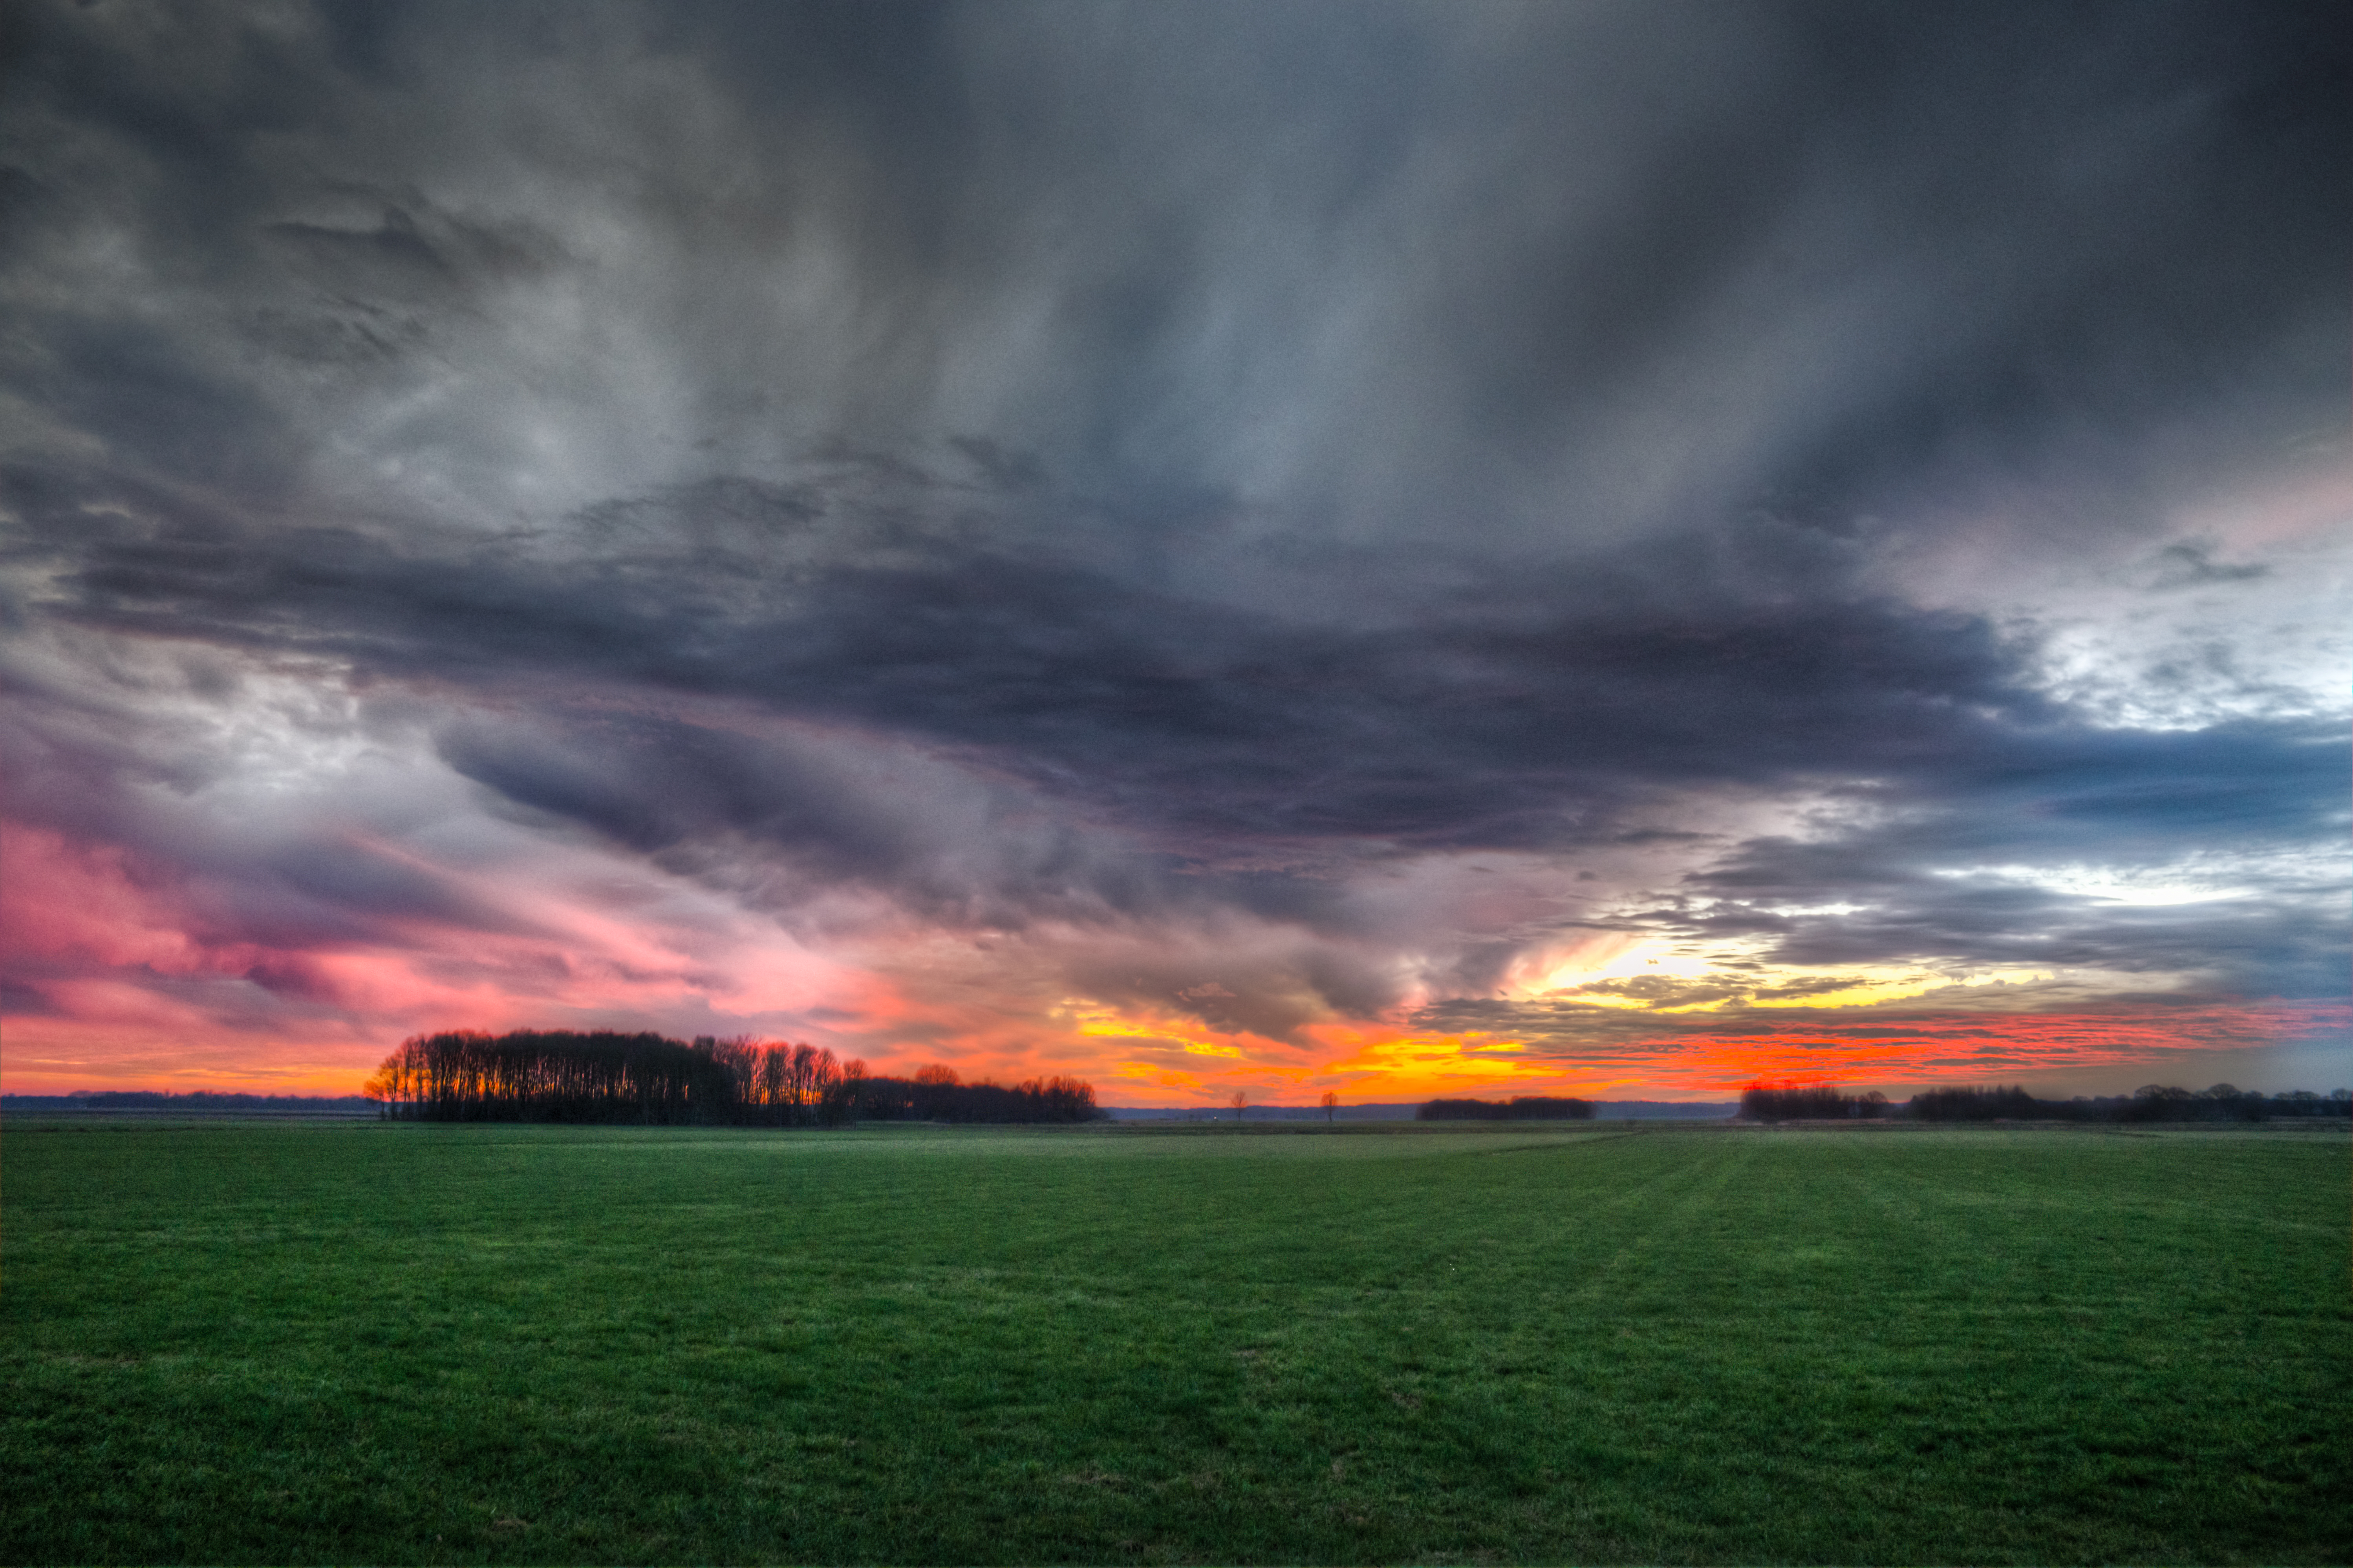 Storm Clouds Over Field During Sunset 183 Free Stock Photo